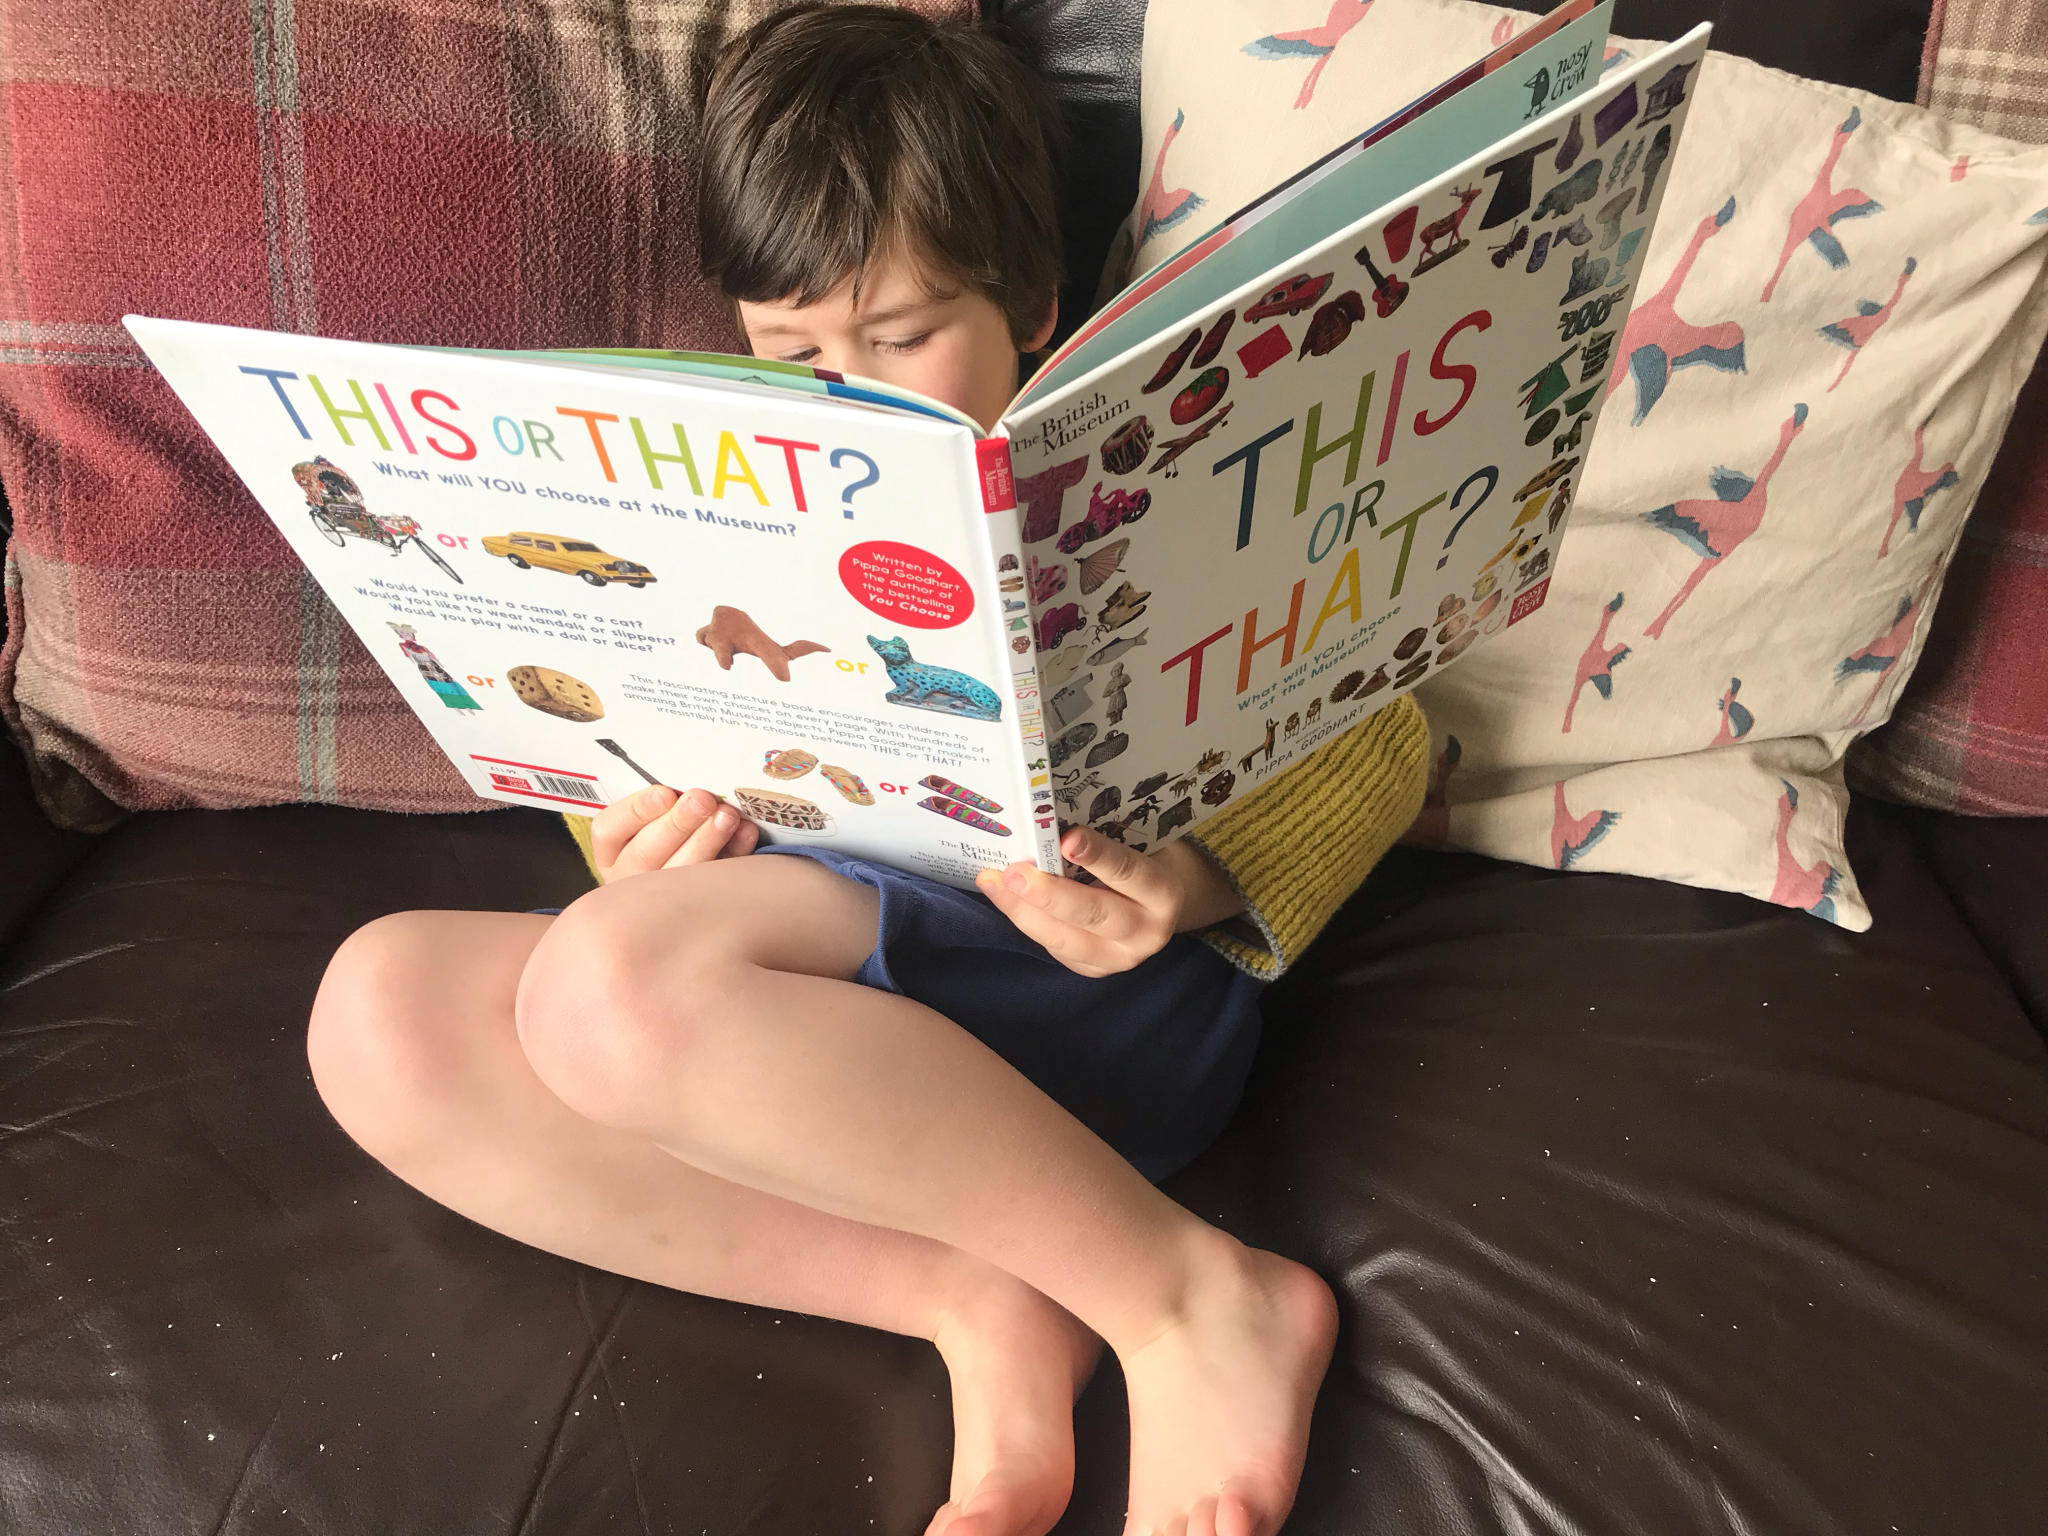 A boy sat reading book called 'This or That' on the sofa